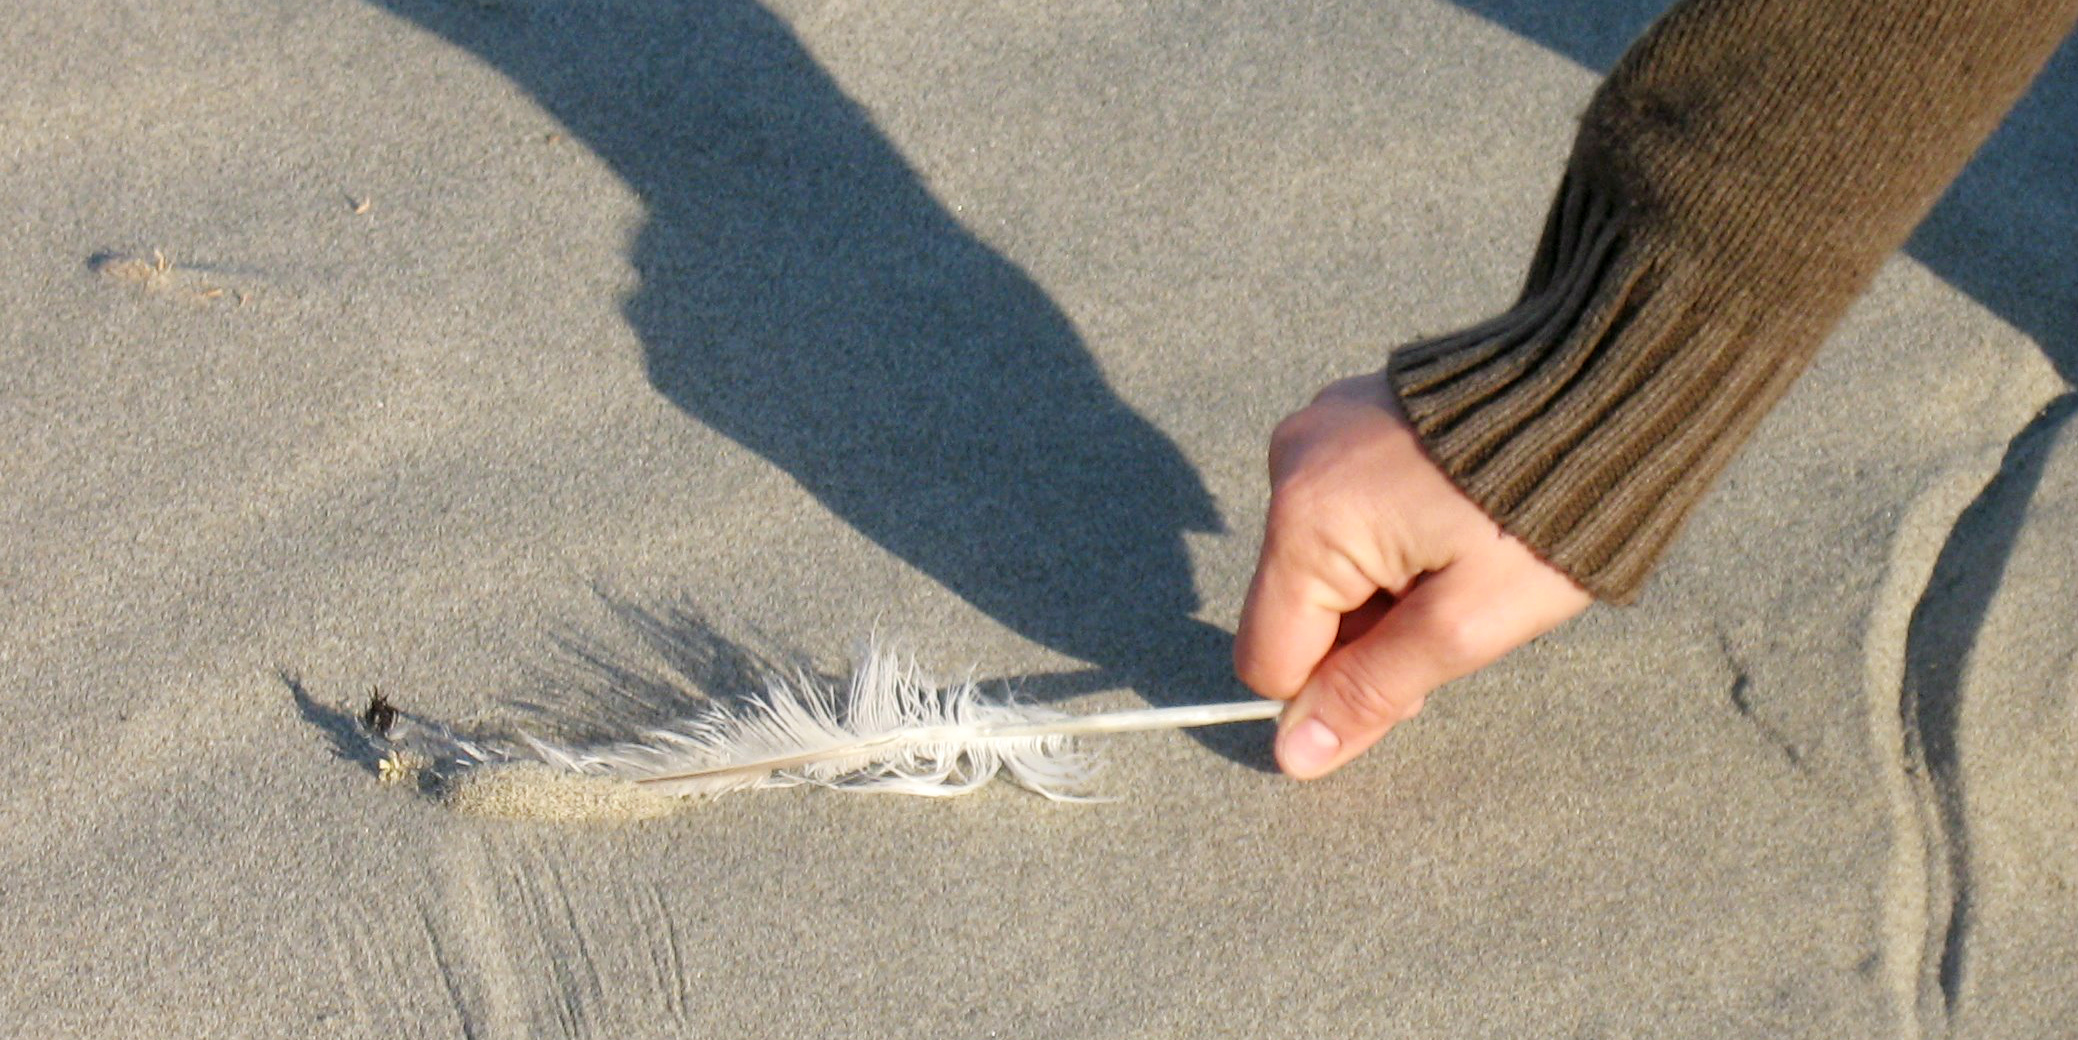 An individual bends down to collect a feather off of a beach   sustainable travel tips